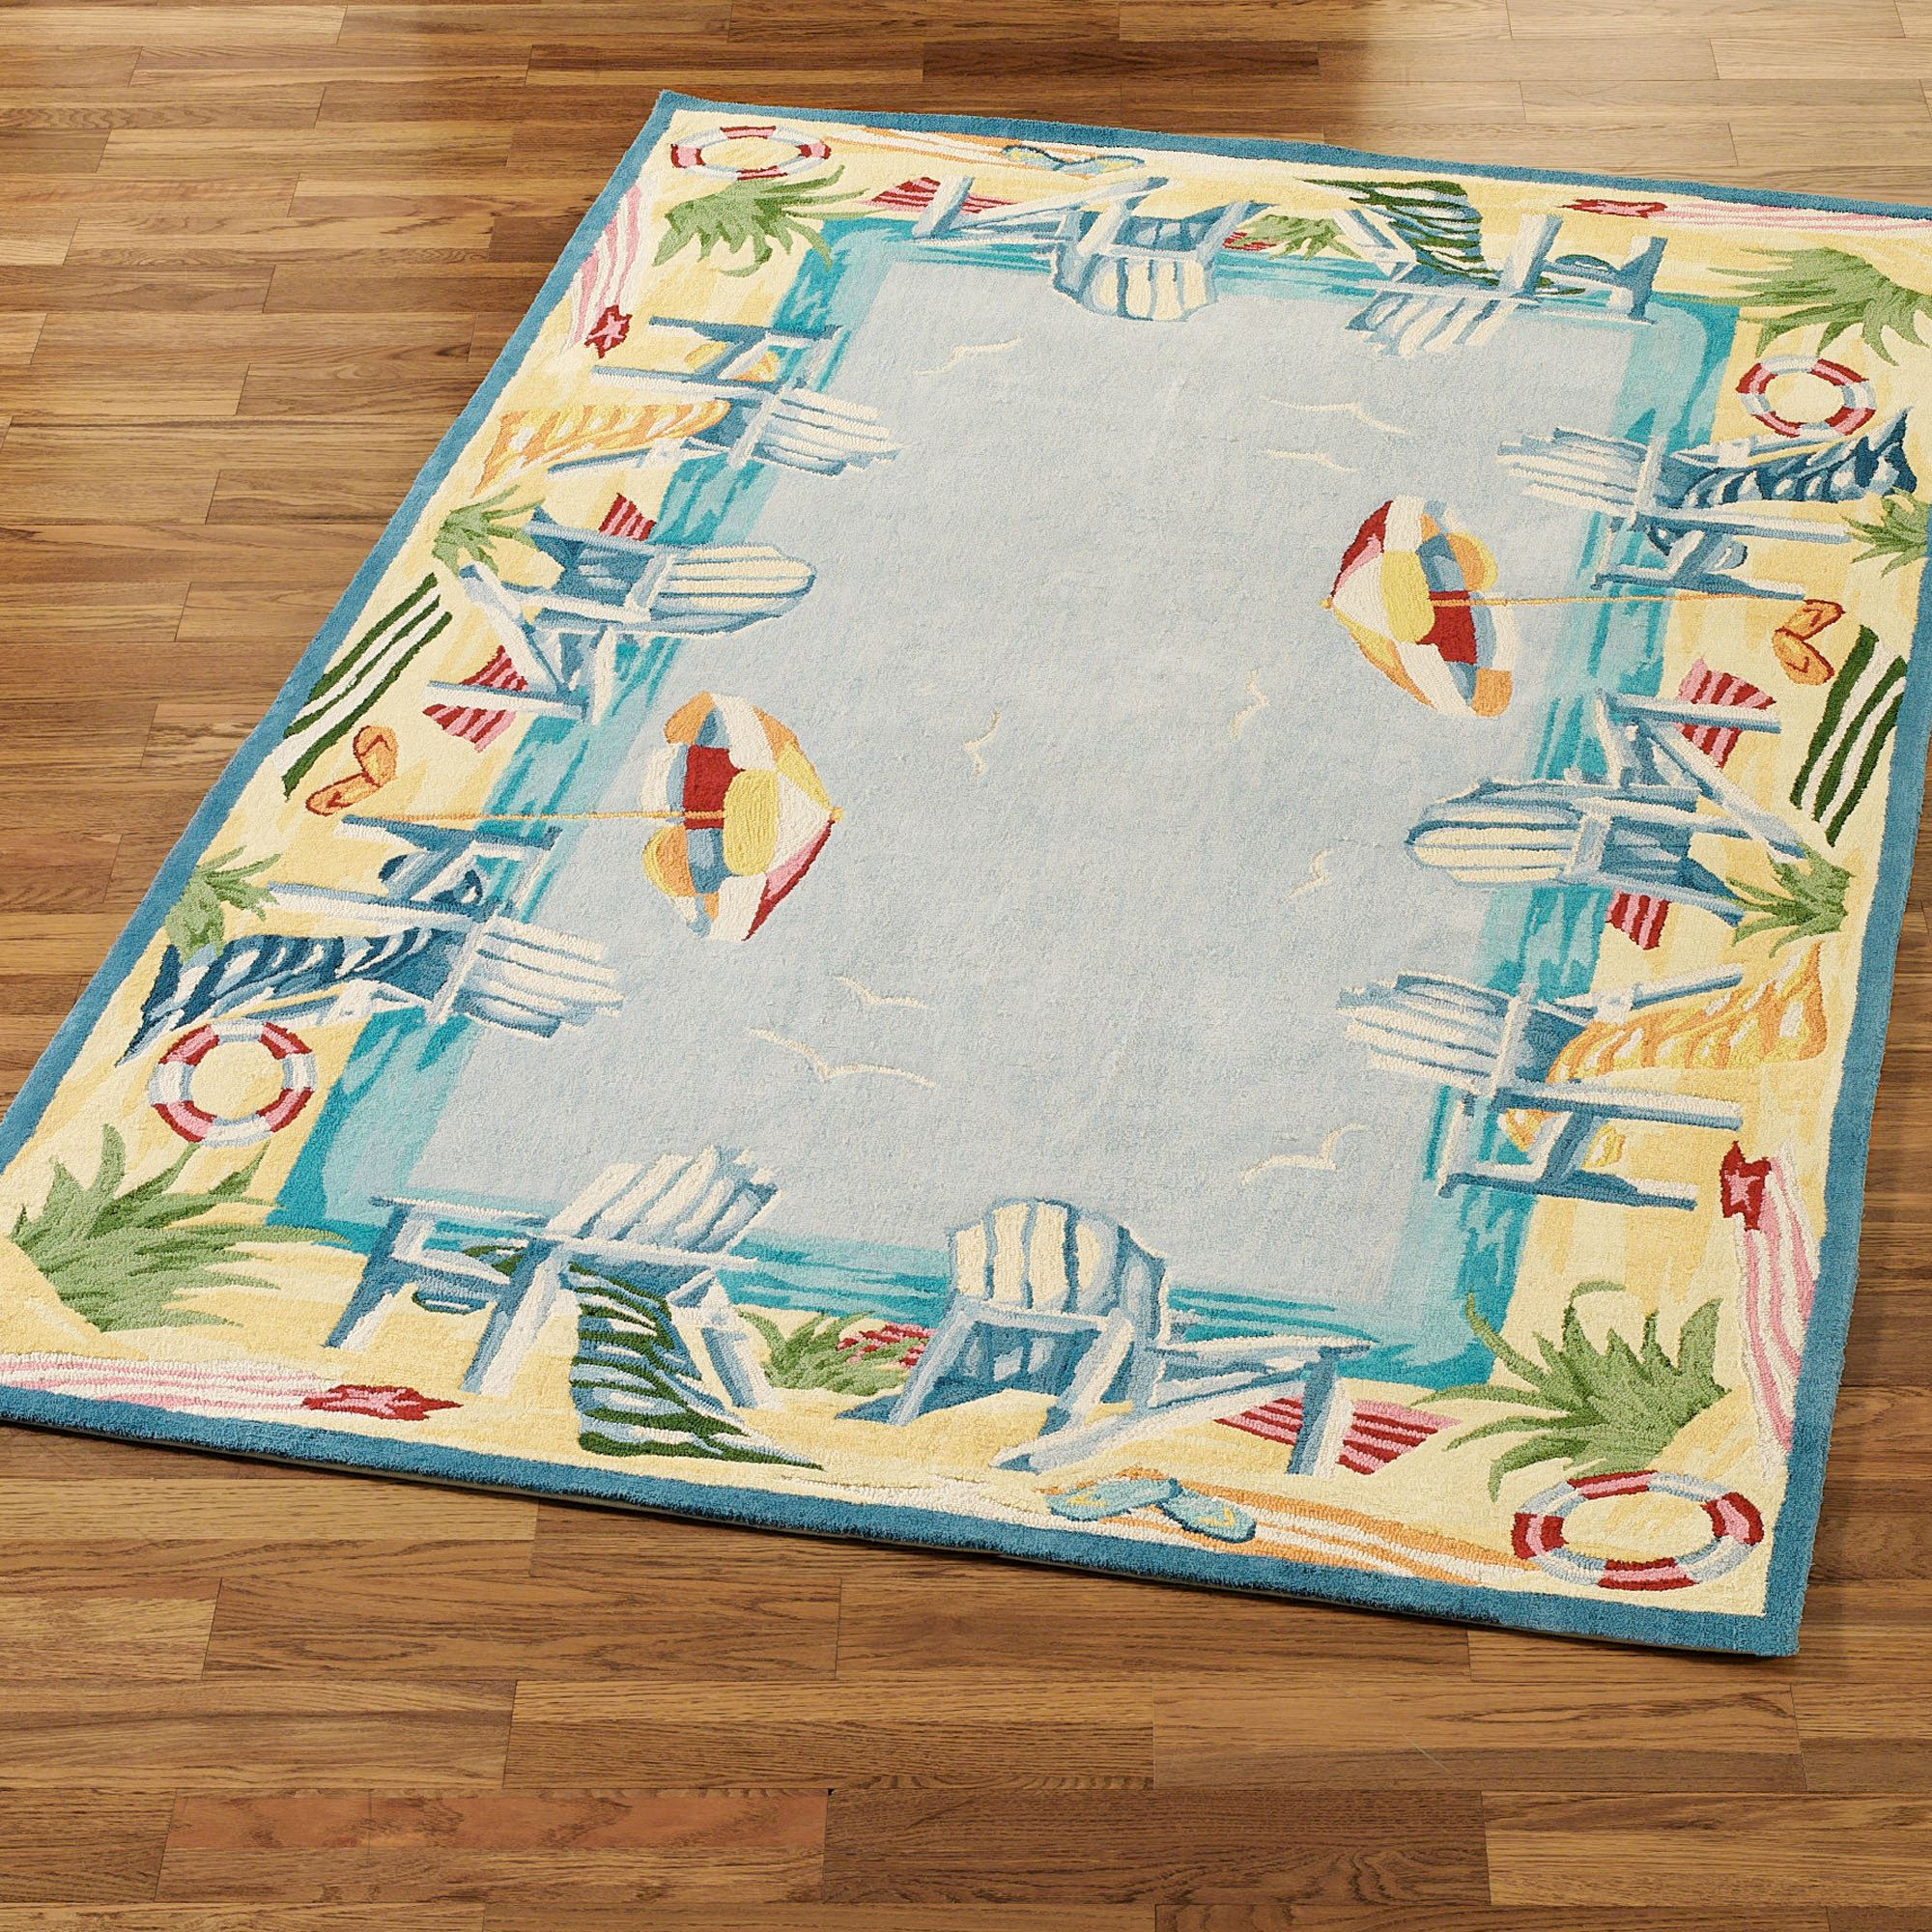 rugs residenciarusc throw house cottage round beachy rug beach area style nautical blue y com